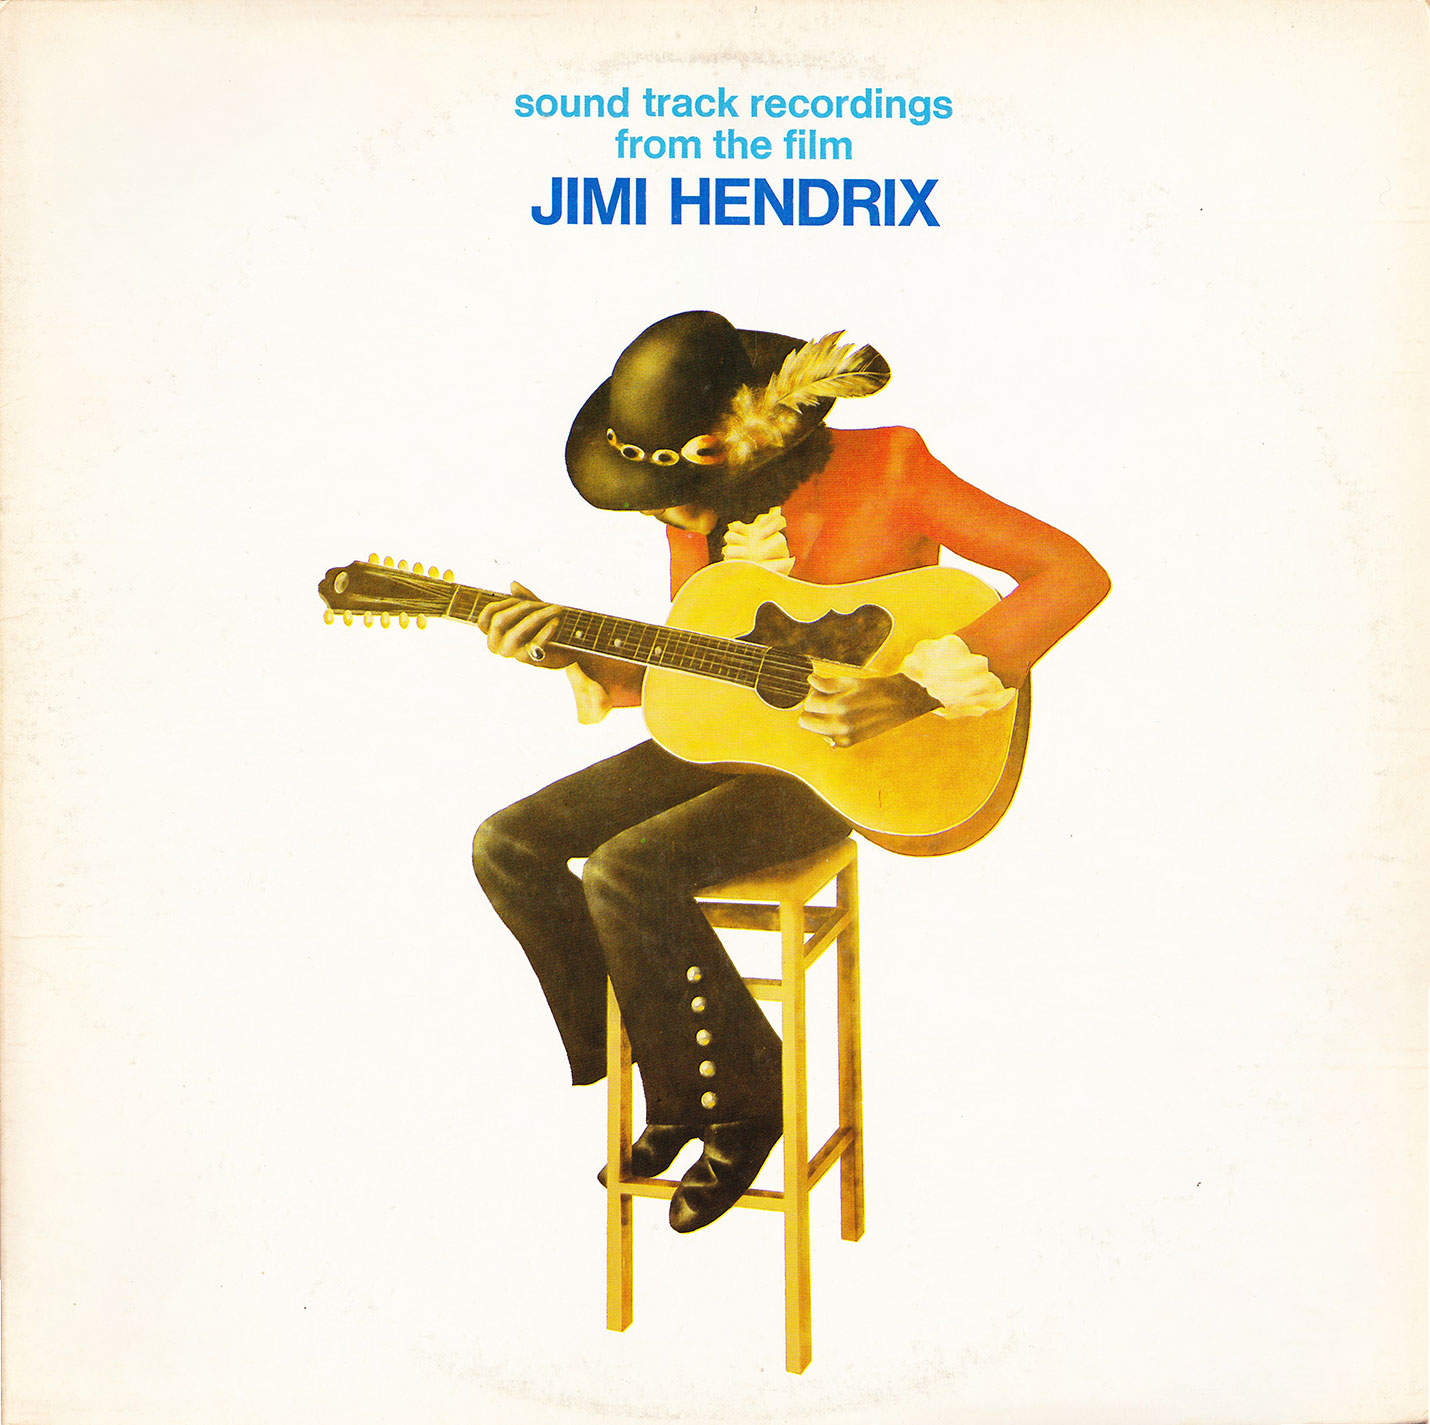 cun cun revival jimi hendrix 1973 soundtrack recordings from the film jh. Black Bedroom Furniture Sets. Home Design Ideas